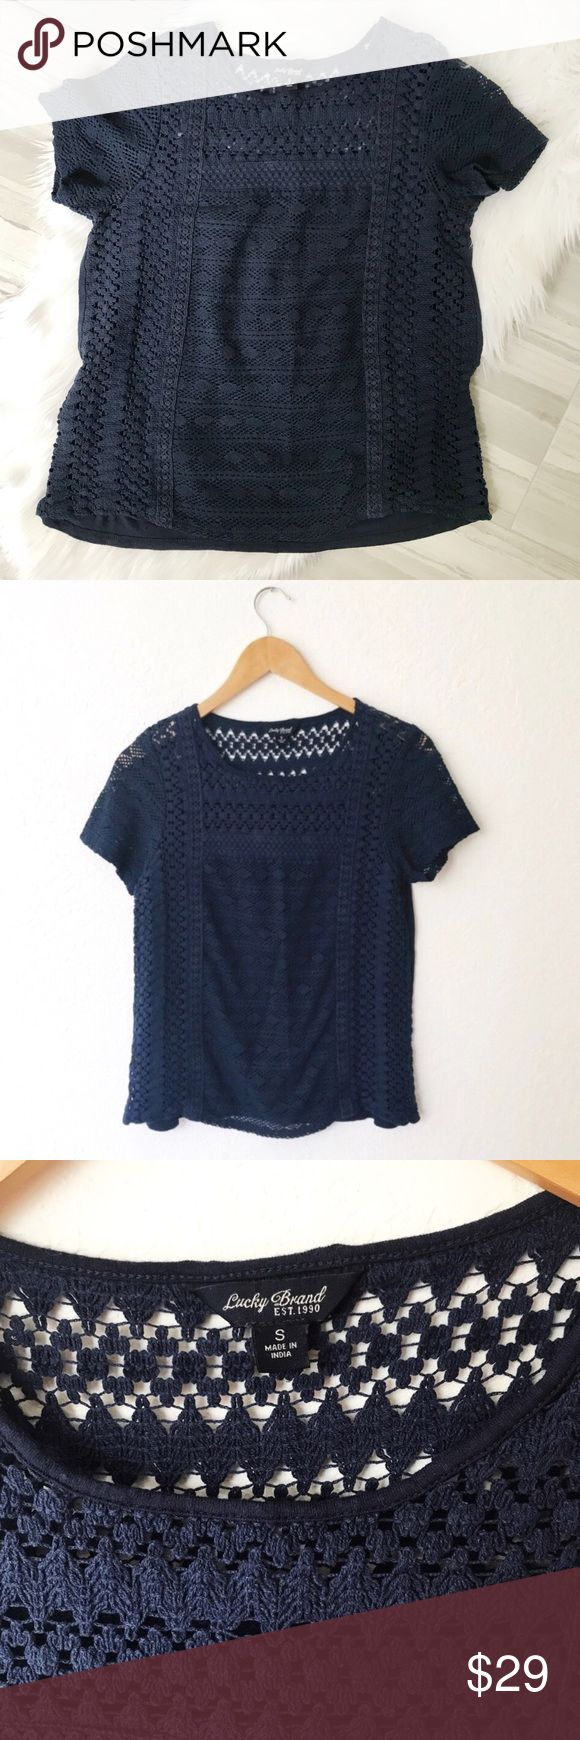 Lucky Brand Navy Lace Crochet Short Sleeve Top Excellent preowned condition. Beautiful Navy Blue Lace in the front and partially in the back, short sleeves, Loose fitting. Lucky Brand Tops